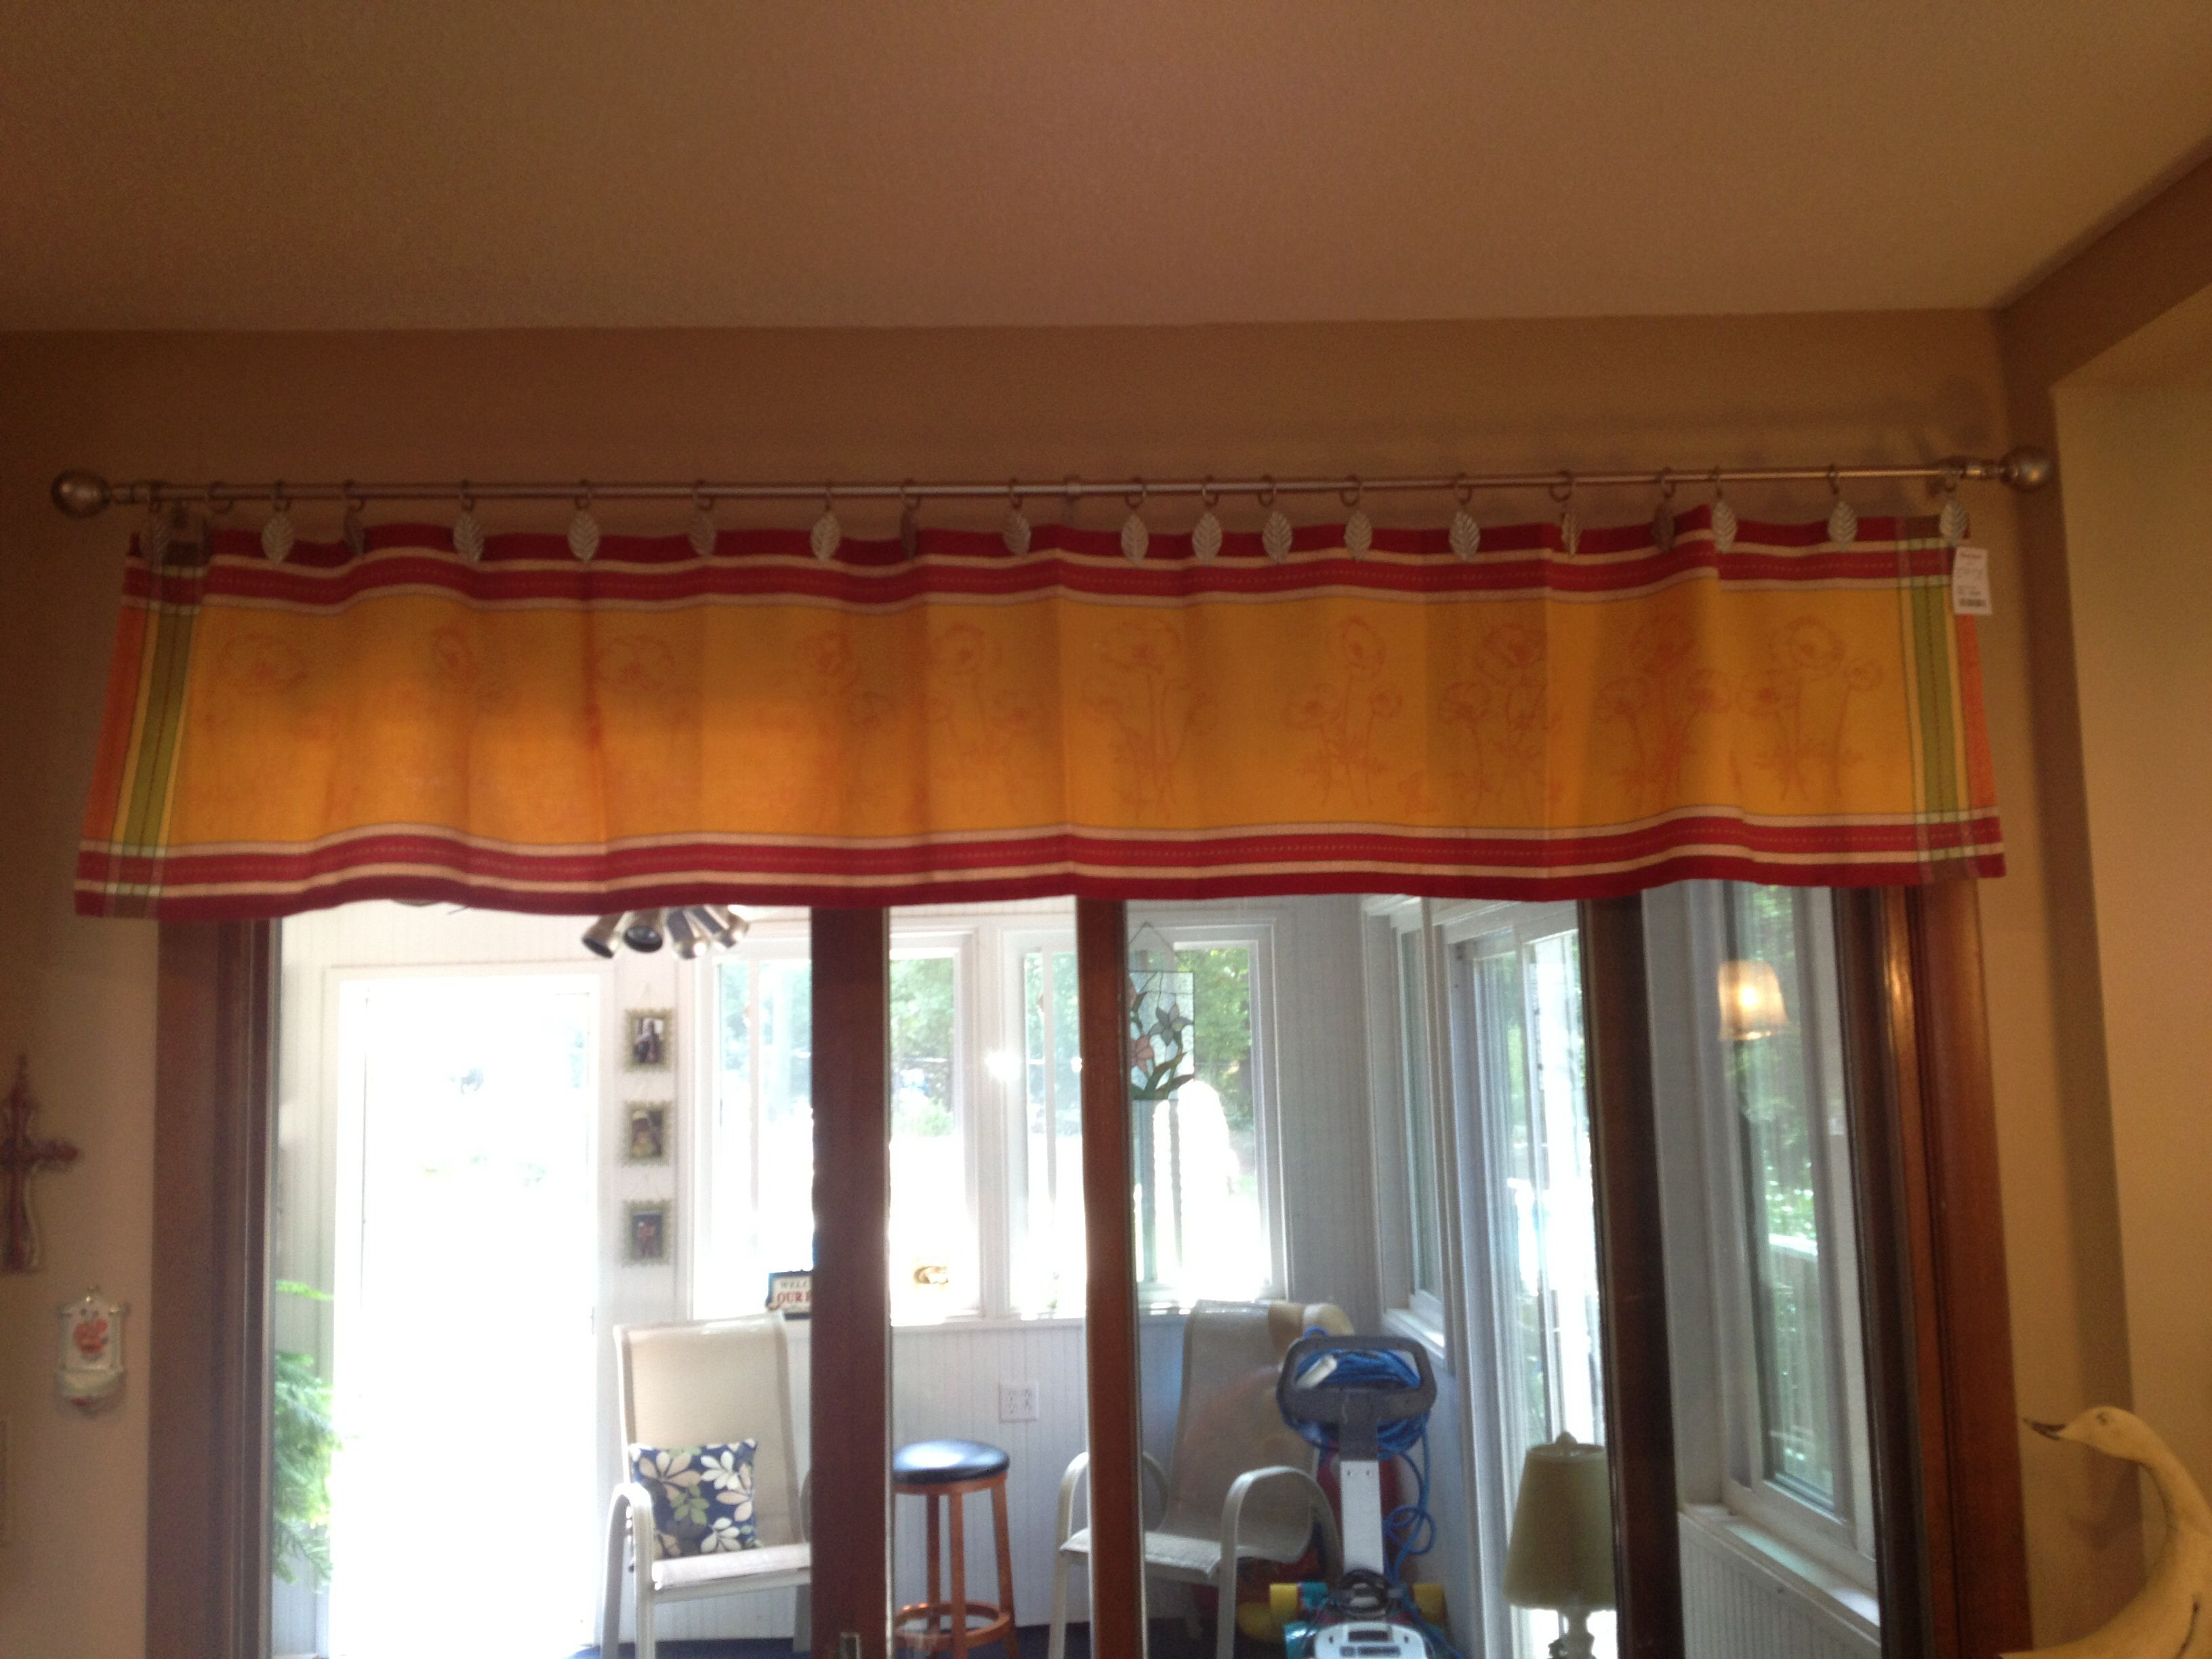 No Sew Valance Made From Table Runner Using Curtain Rings